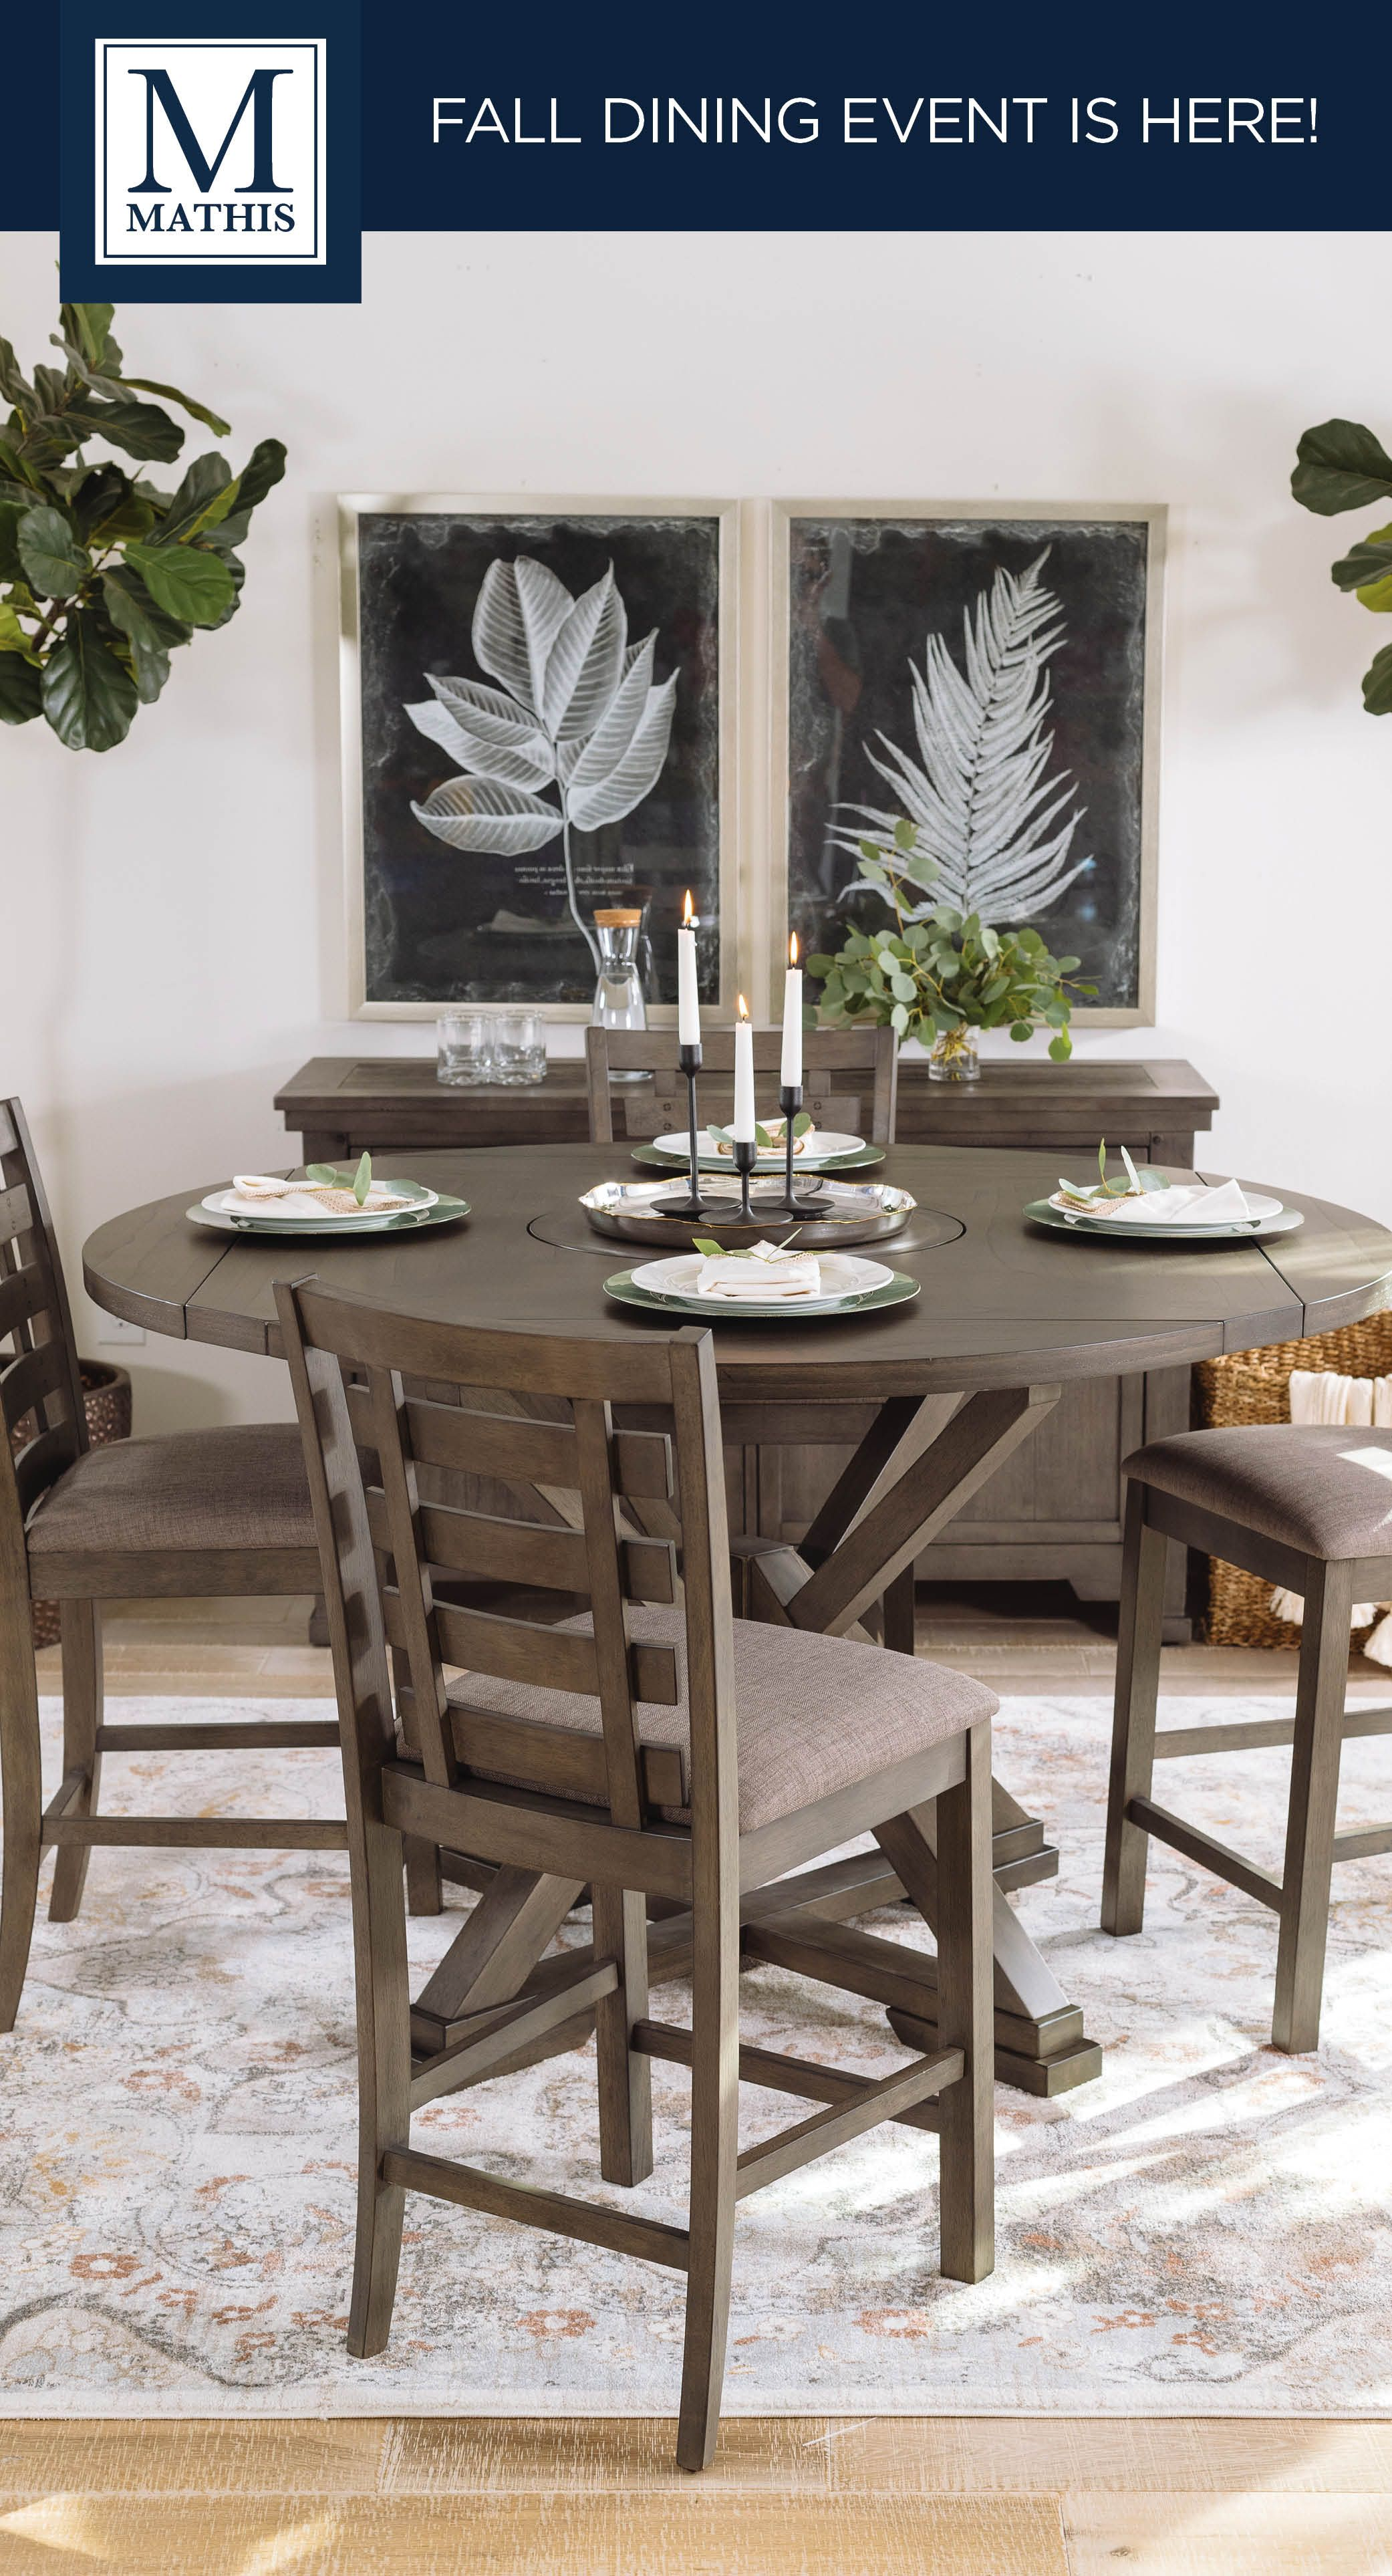 Navy And Gold Dining Room, Stylish Dining Sets For Fall Dining Room Design Home Design Floor Plans Dining Room Table